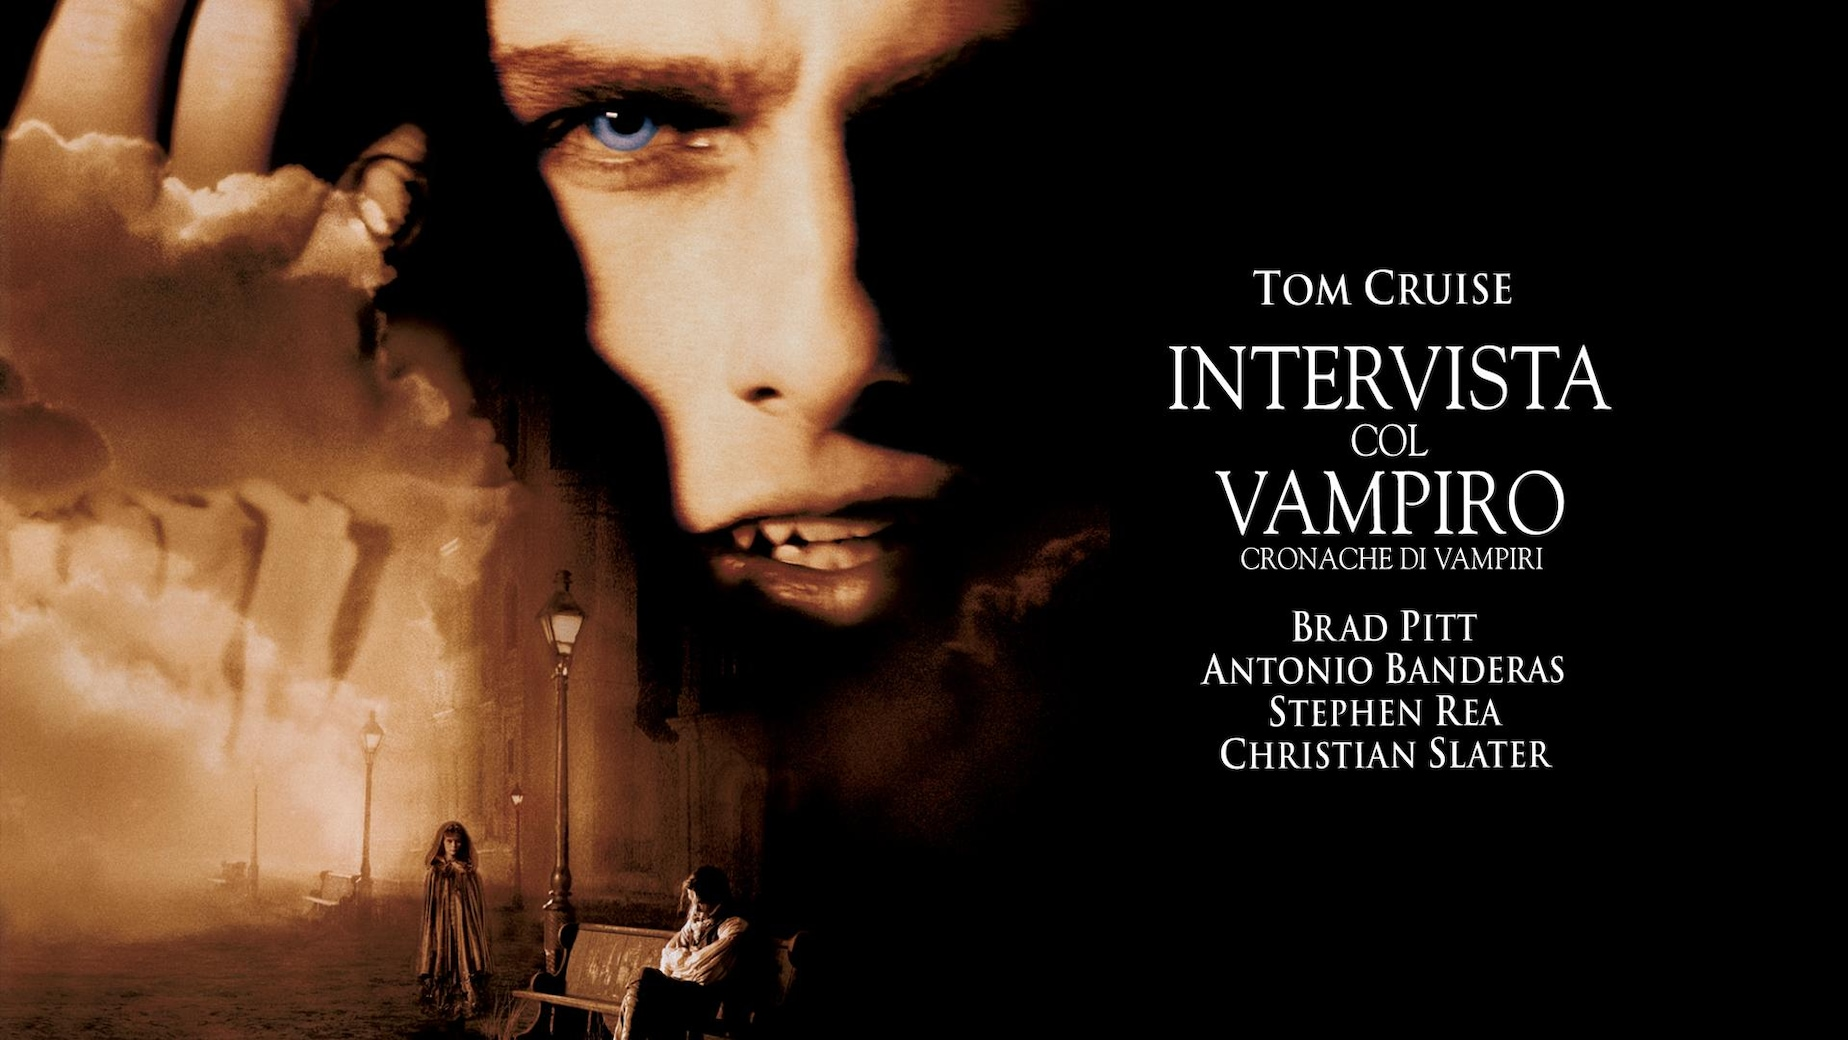 Intervista Col Vampiro Streaming Guarda Subito In Hd Chili